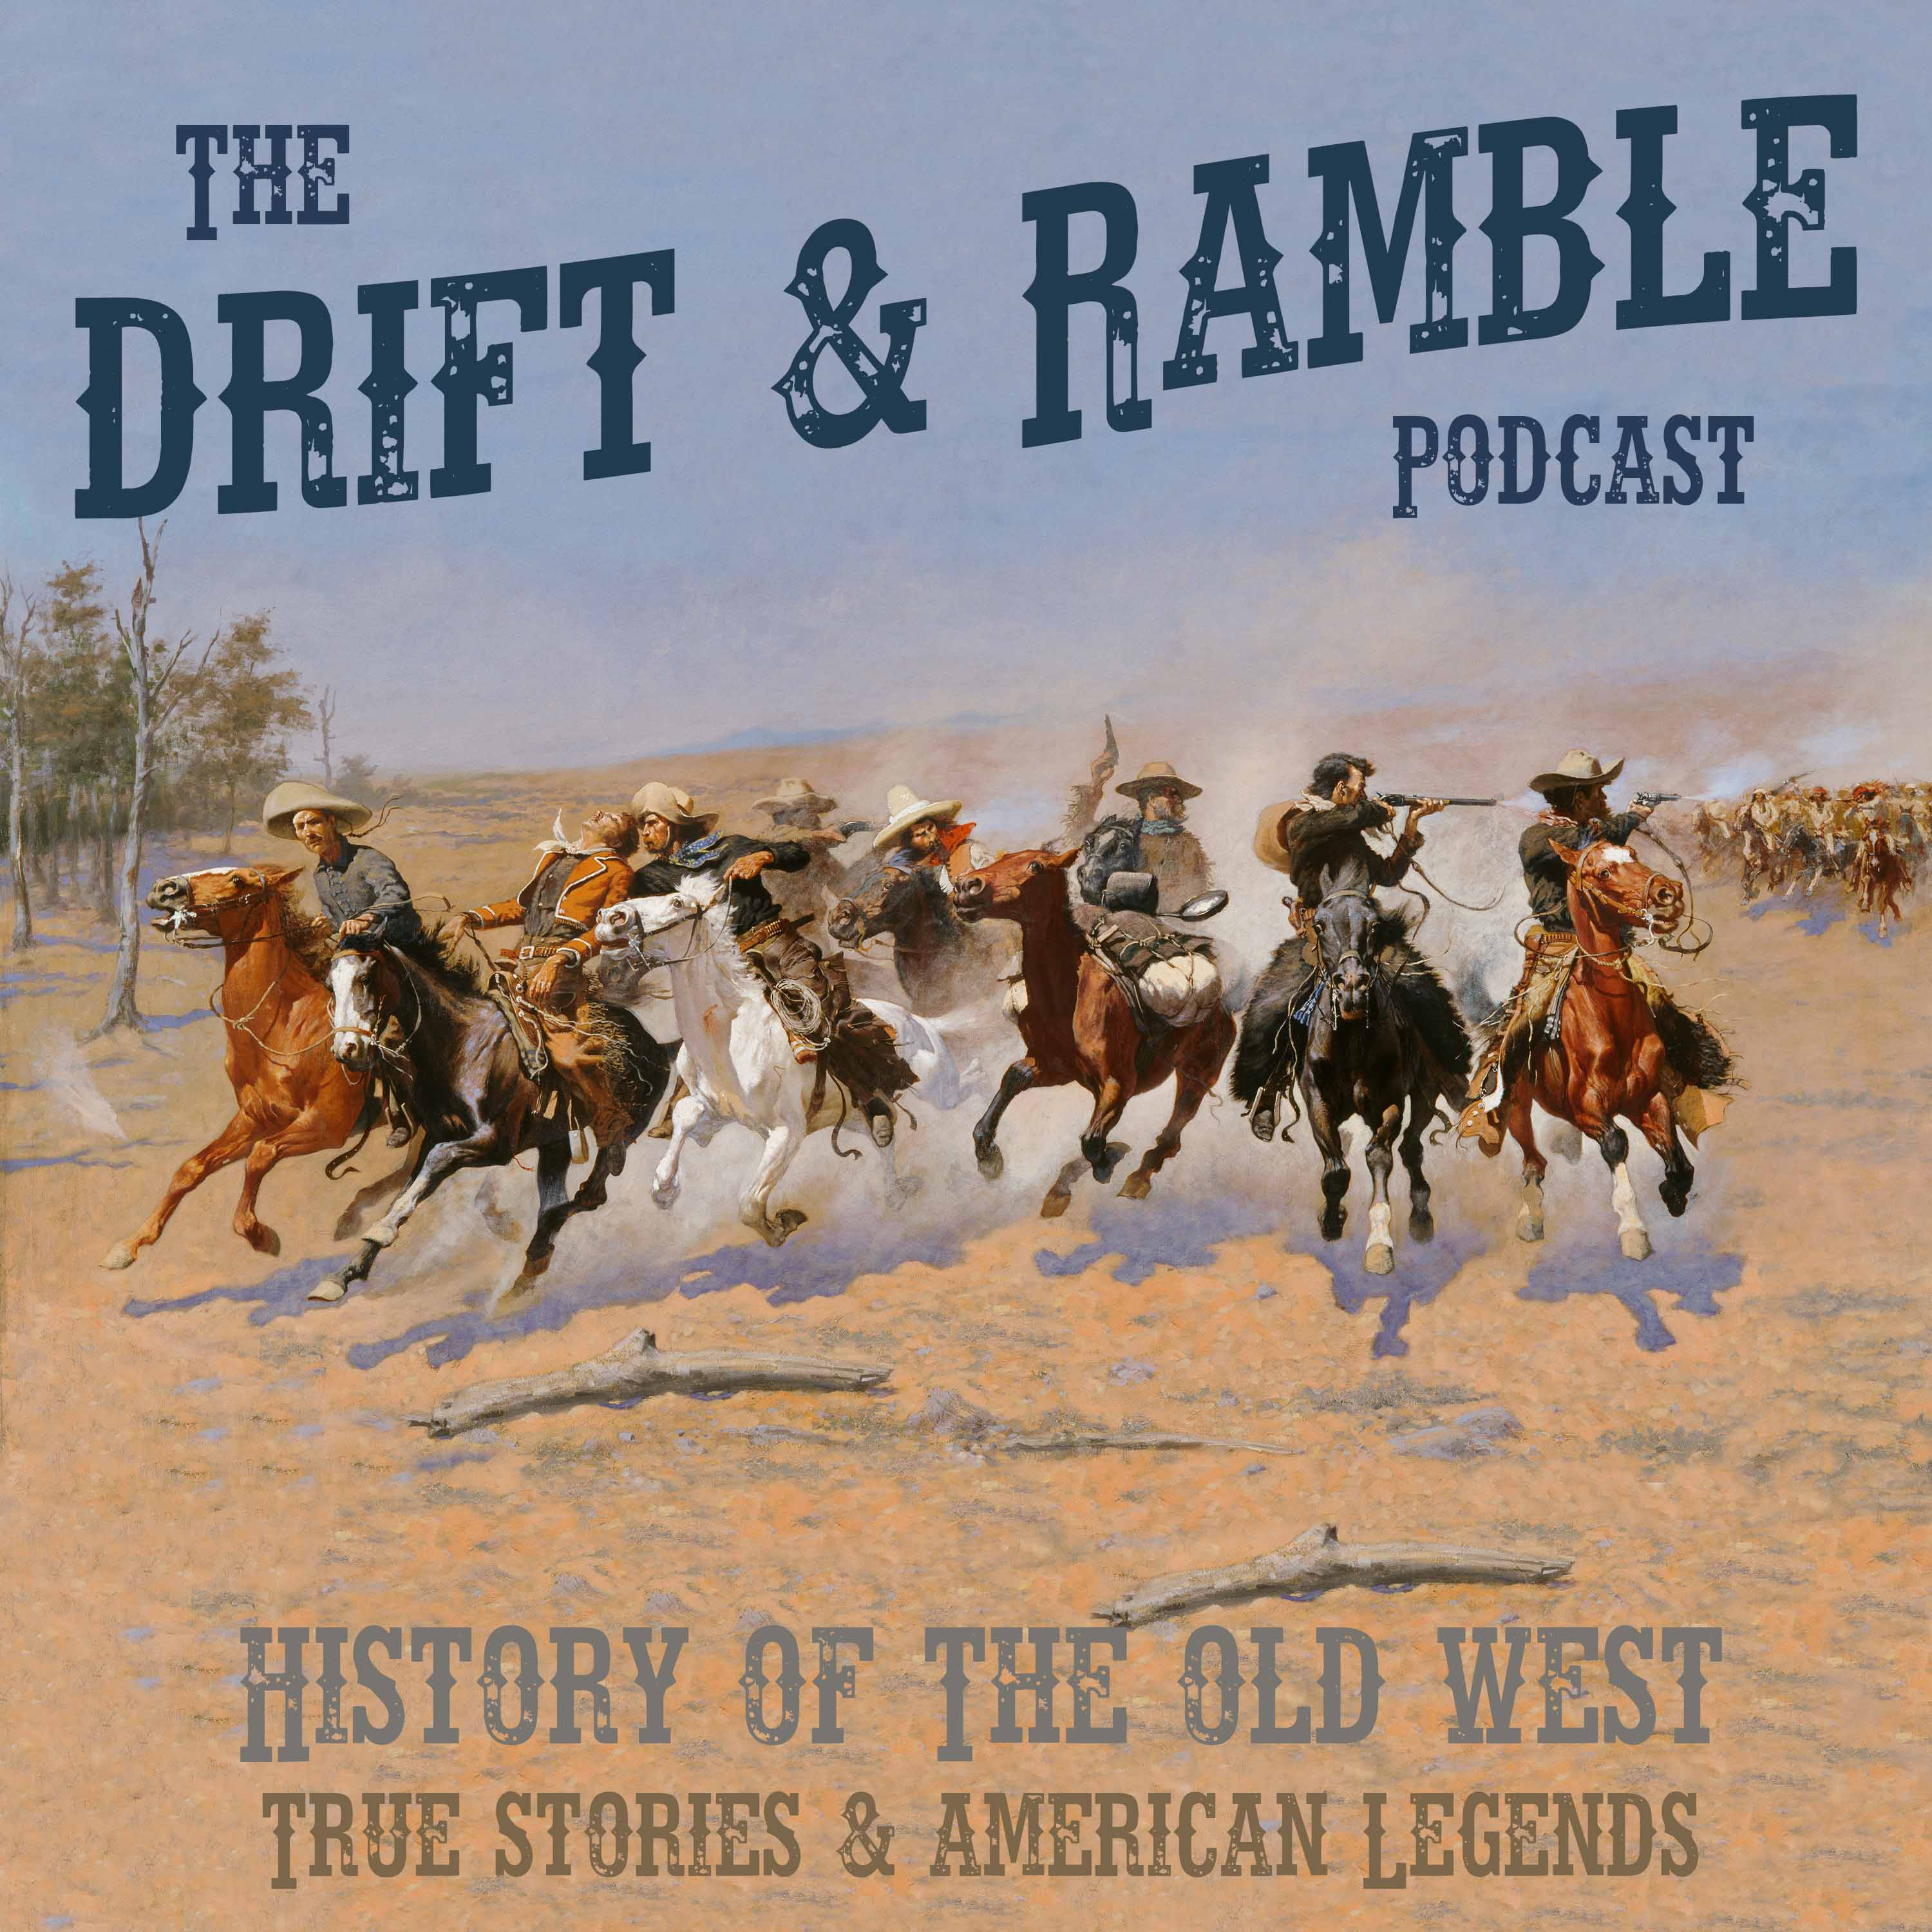 Drift & Ramble Podcast show art